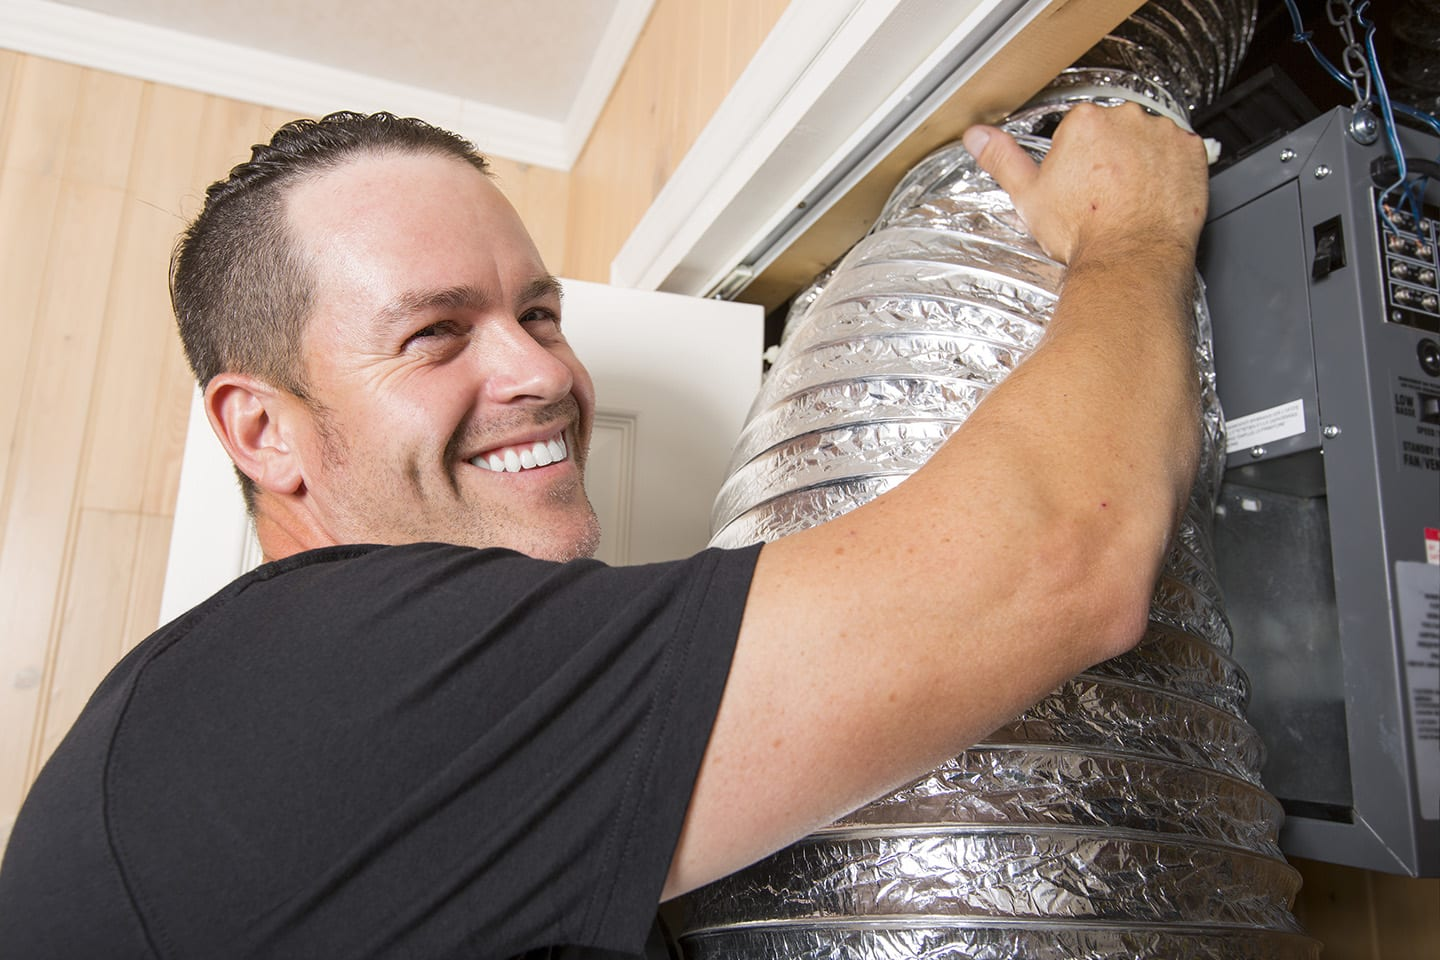 furnace maintenance tips to prepare for the winter in taylor springs illinois